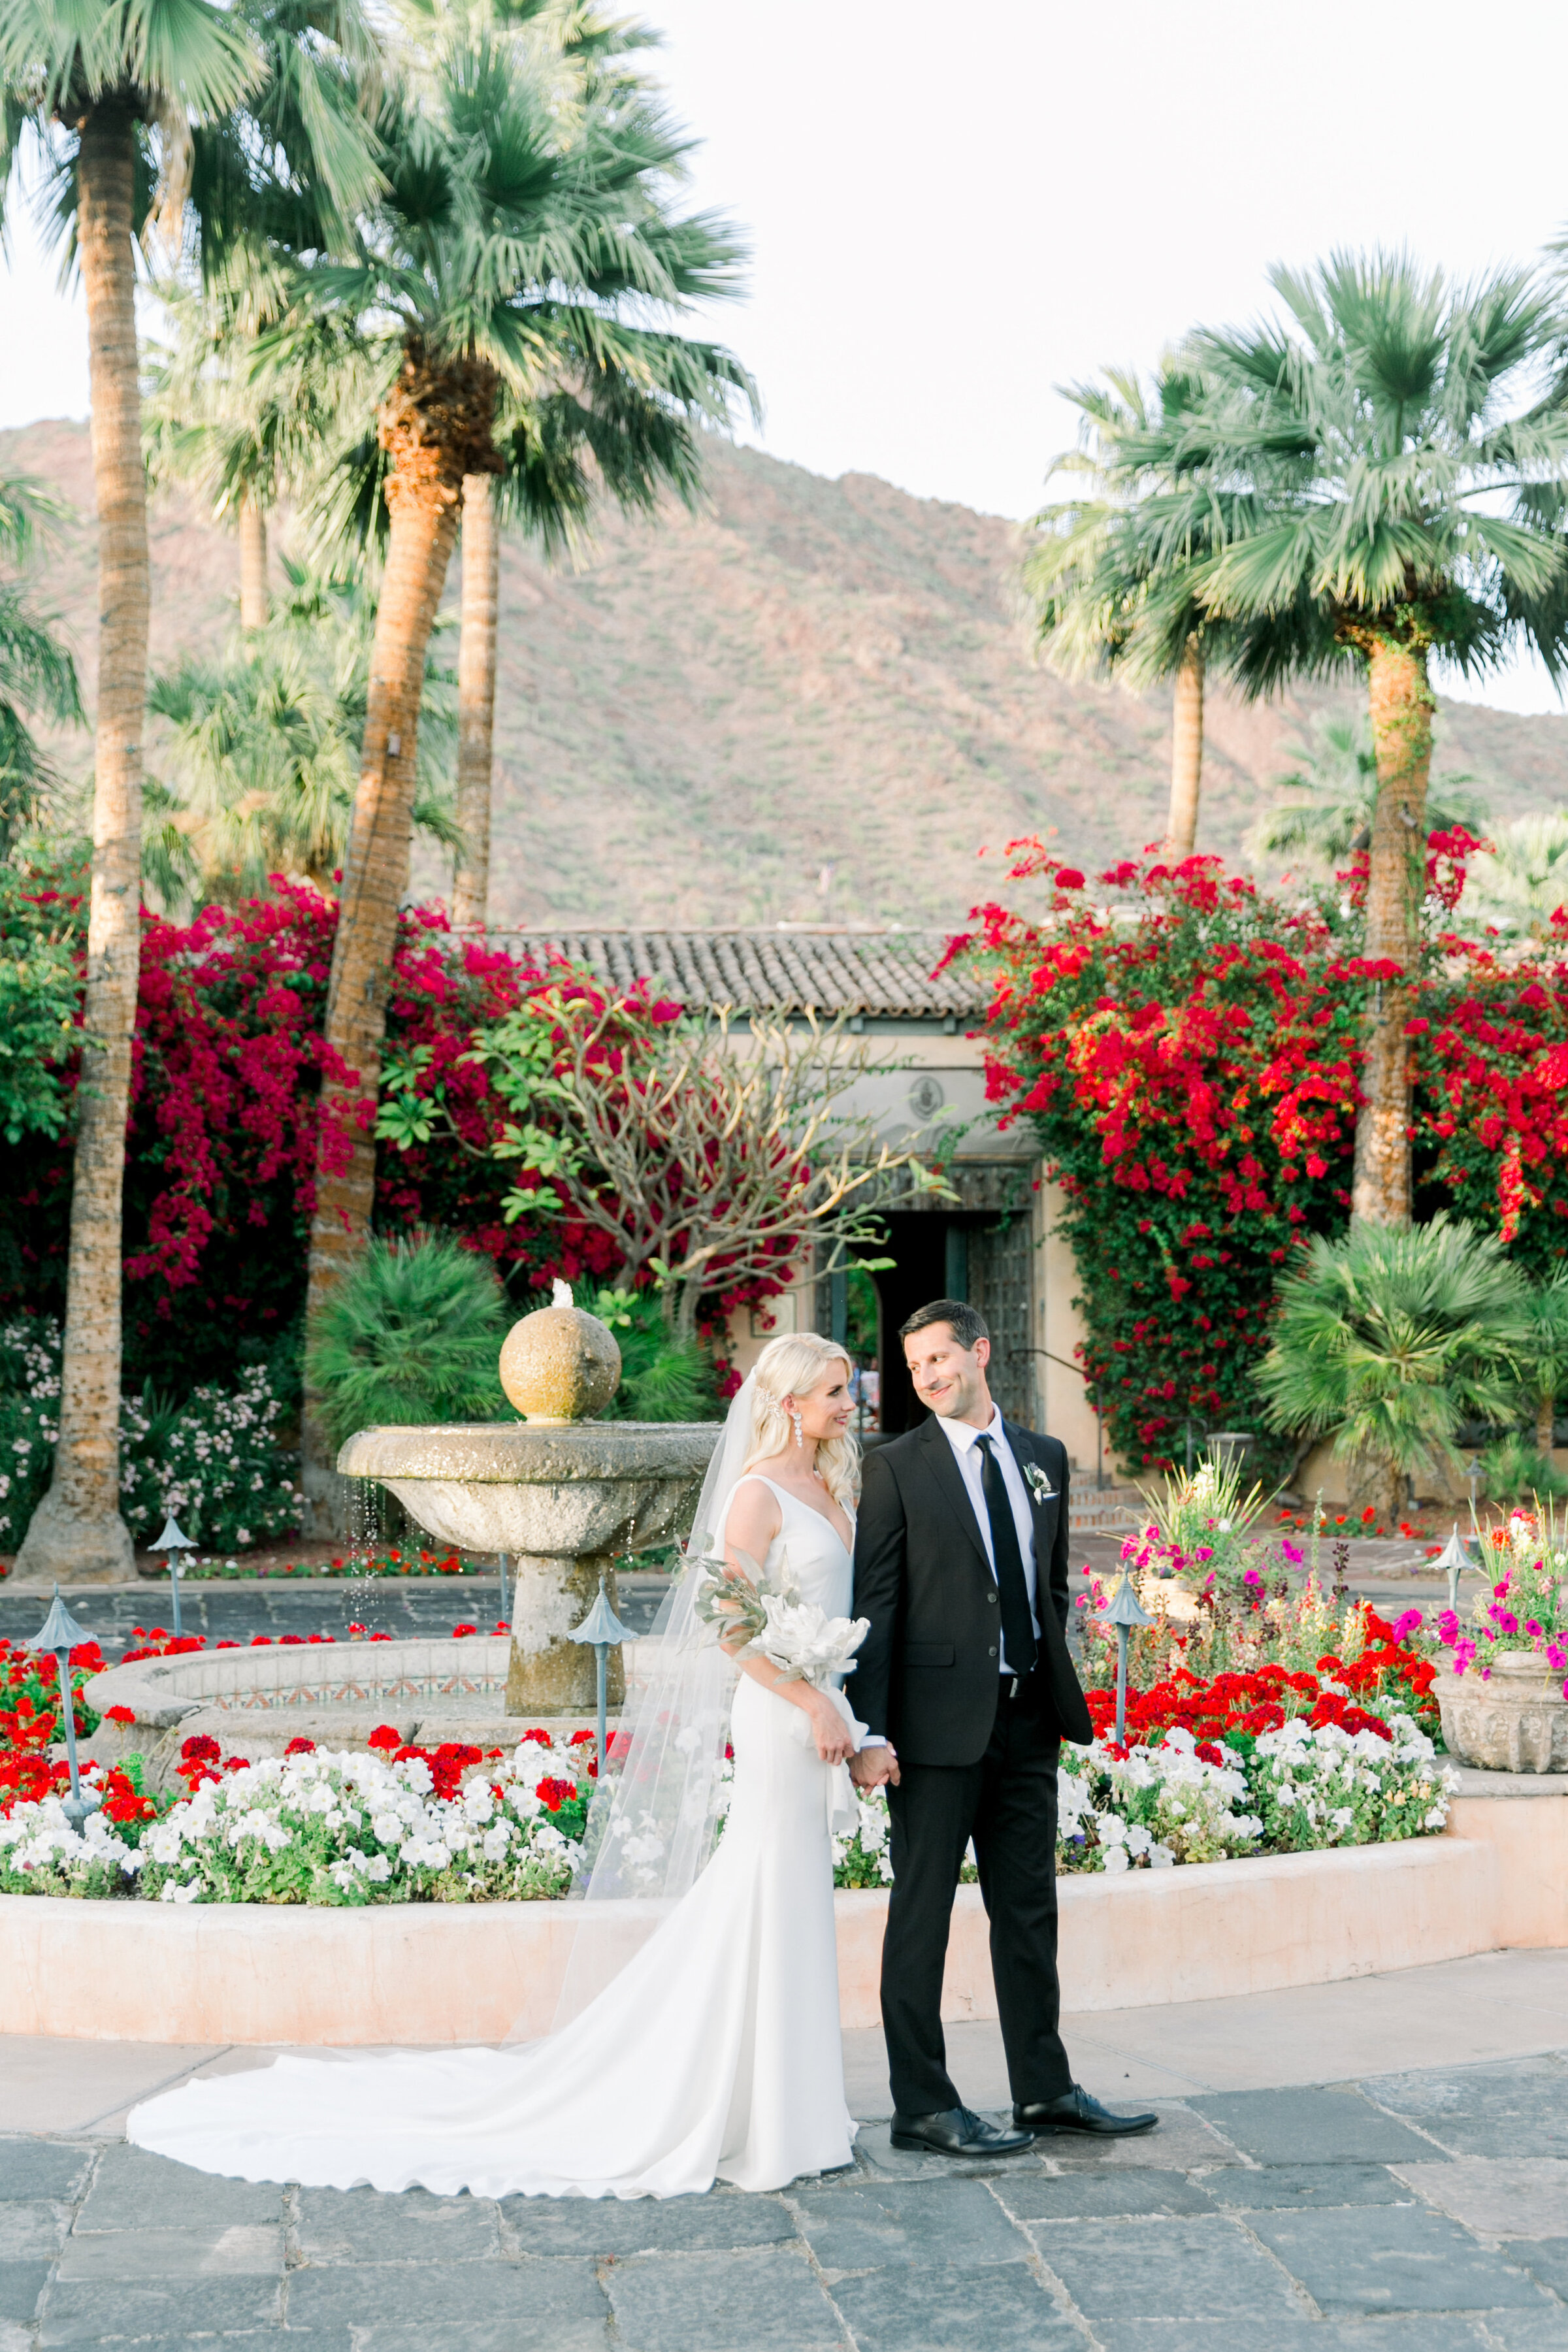 Karlie Colleen Photography - Arizona Wedding - Royal Palms Resort- Alex & Alex-160